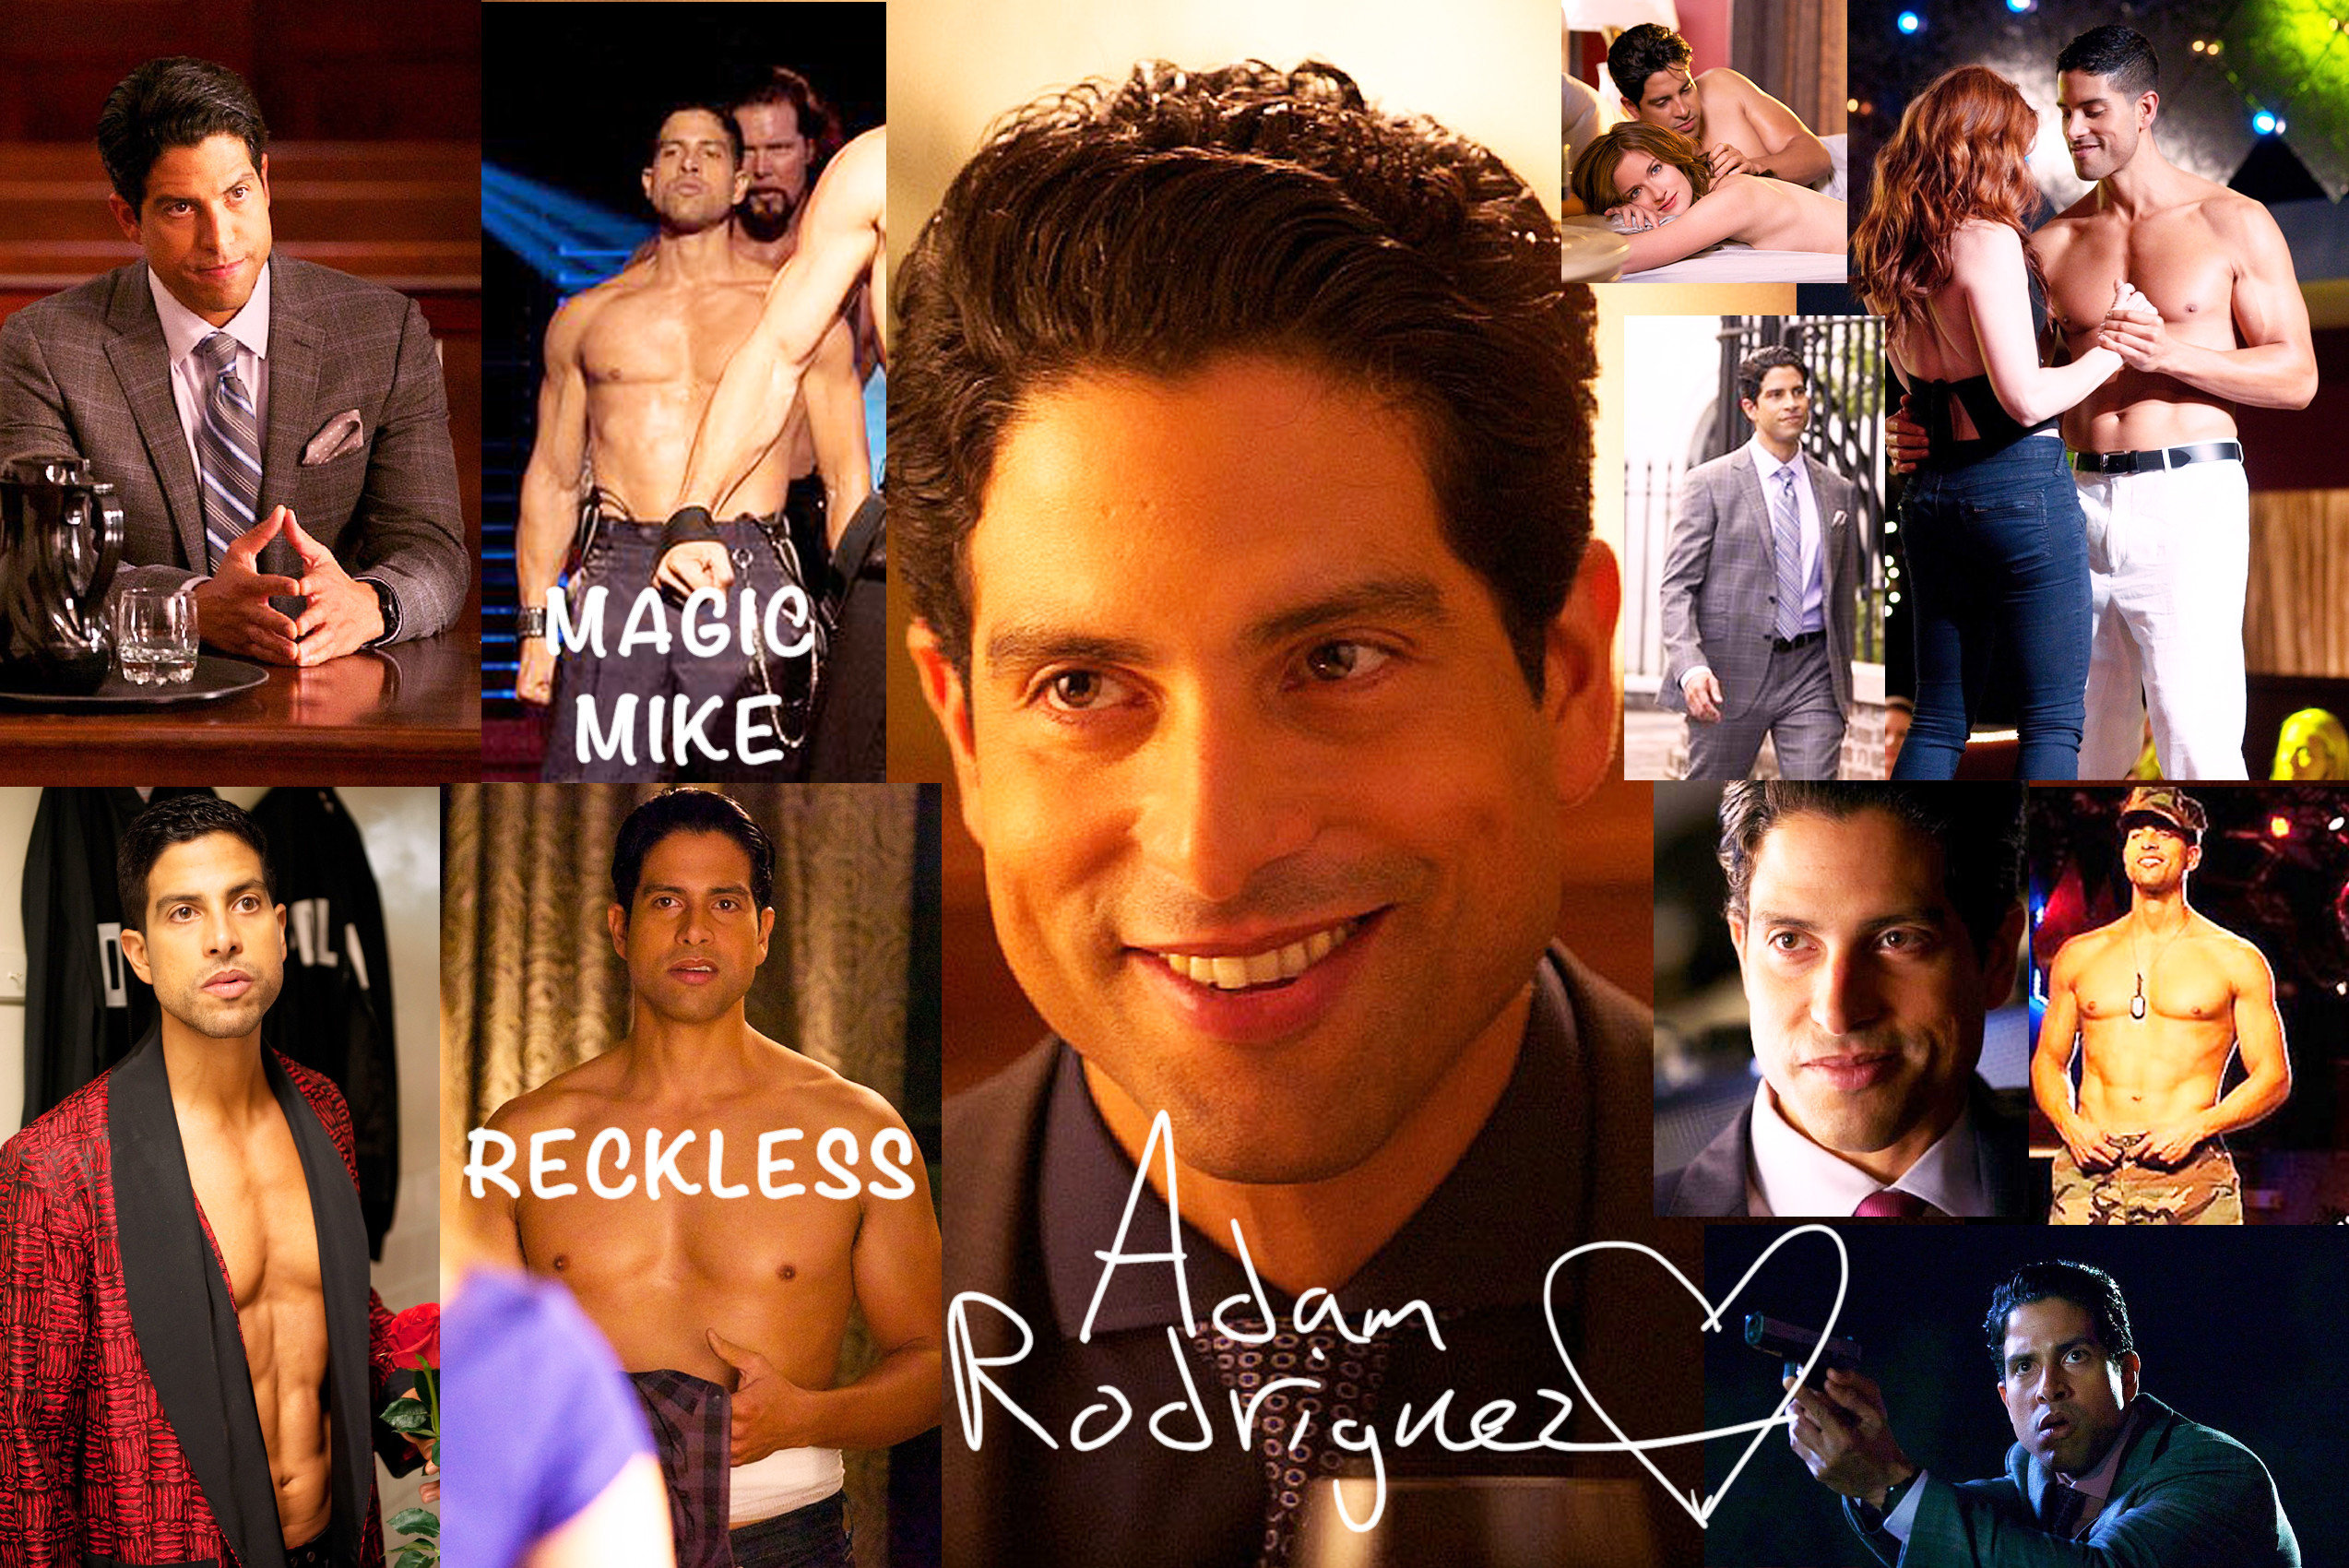 Magic Mike images Adam Rodriguez HD wallpaper and background photos